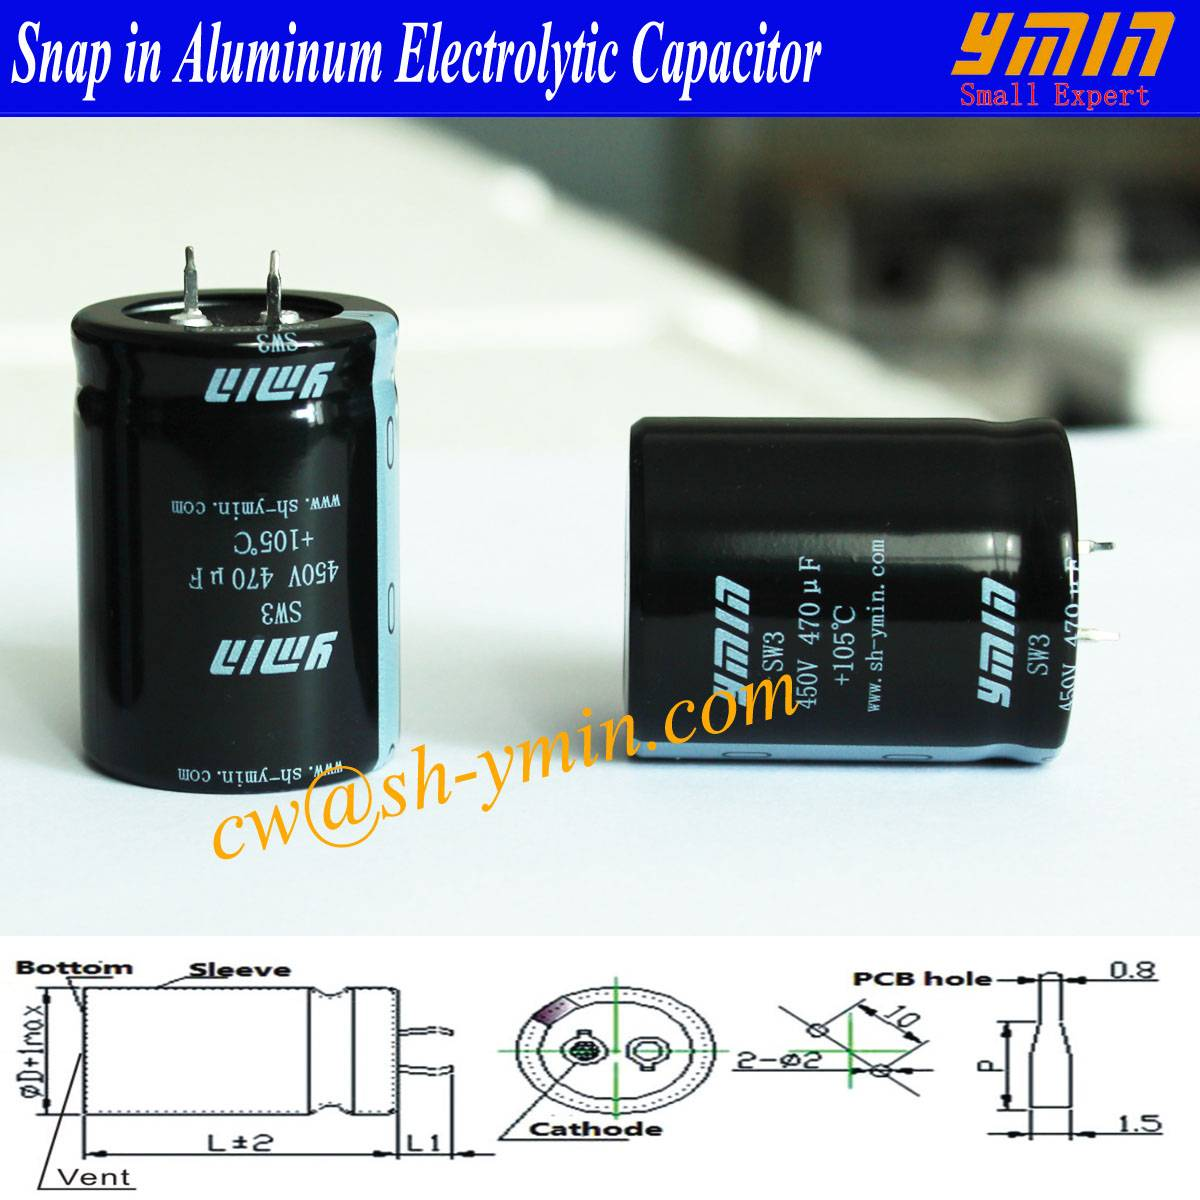 Battery Charger Capacitor Snap inElectrolytic Capacitor for GETC-EVDC